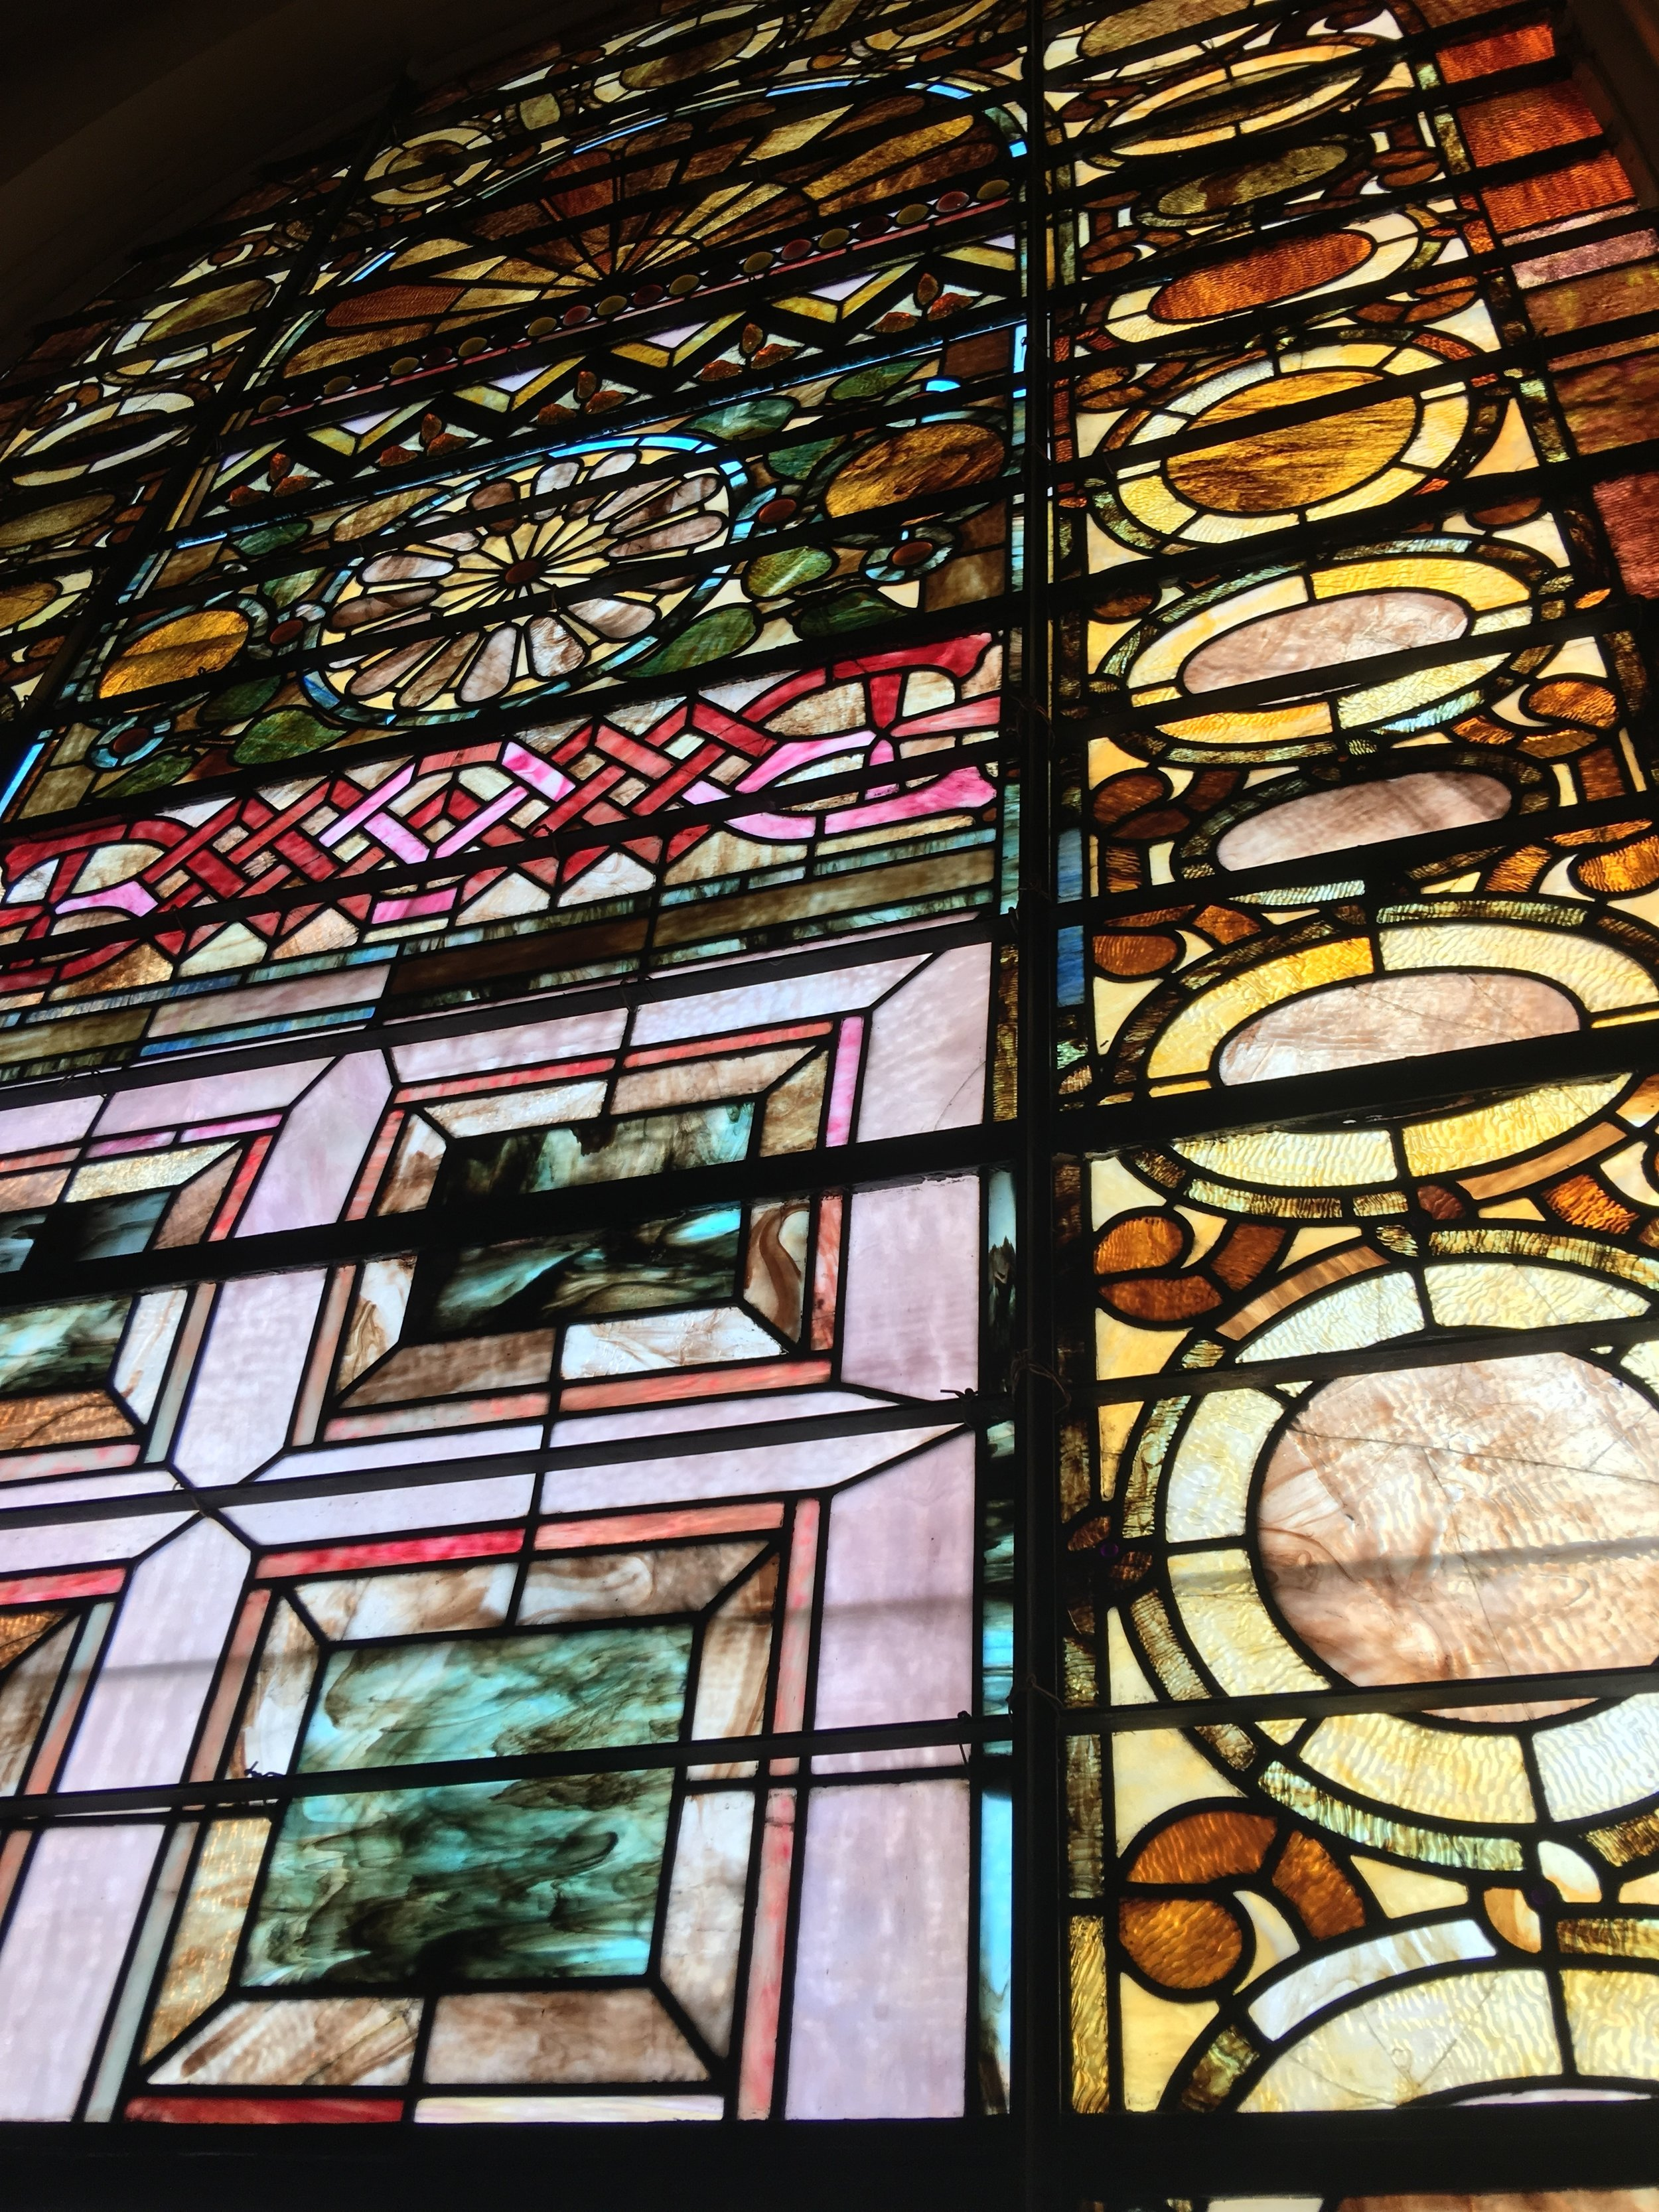 Just one of the many original stained glass windows